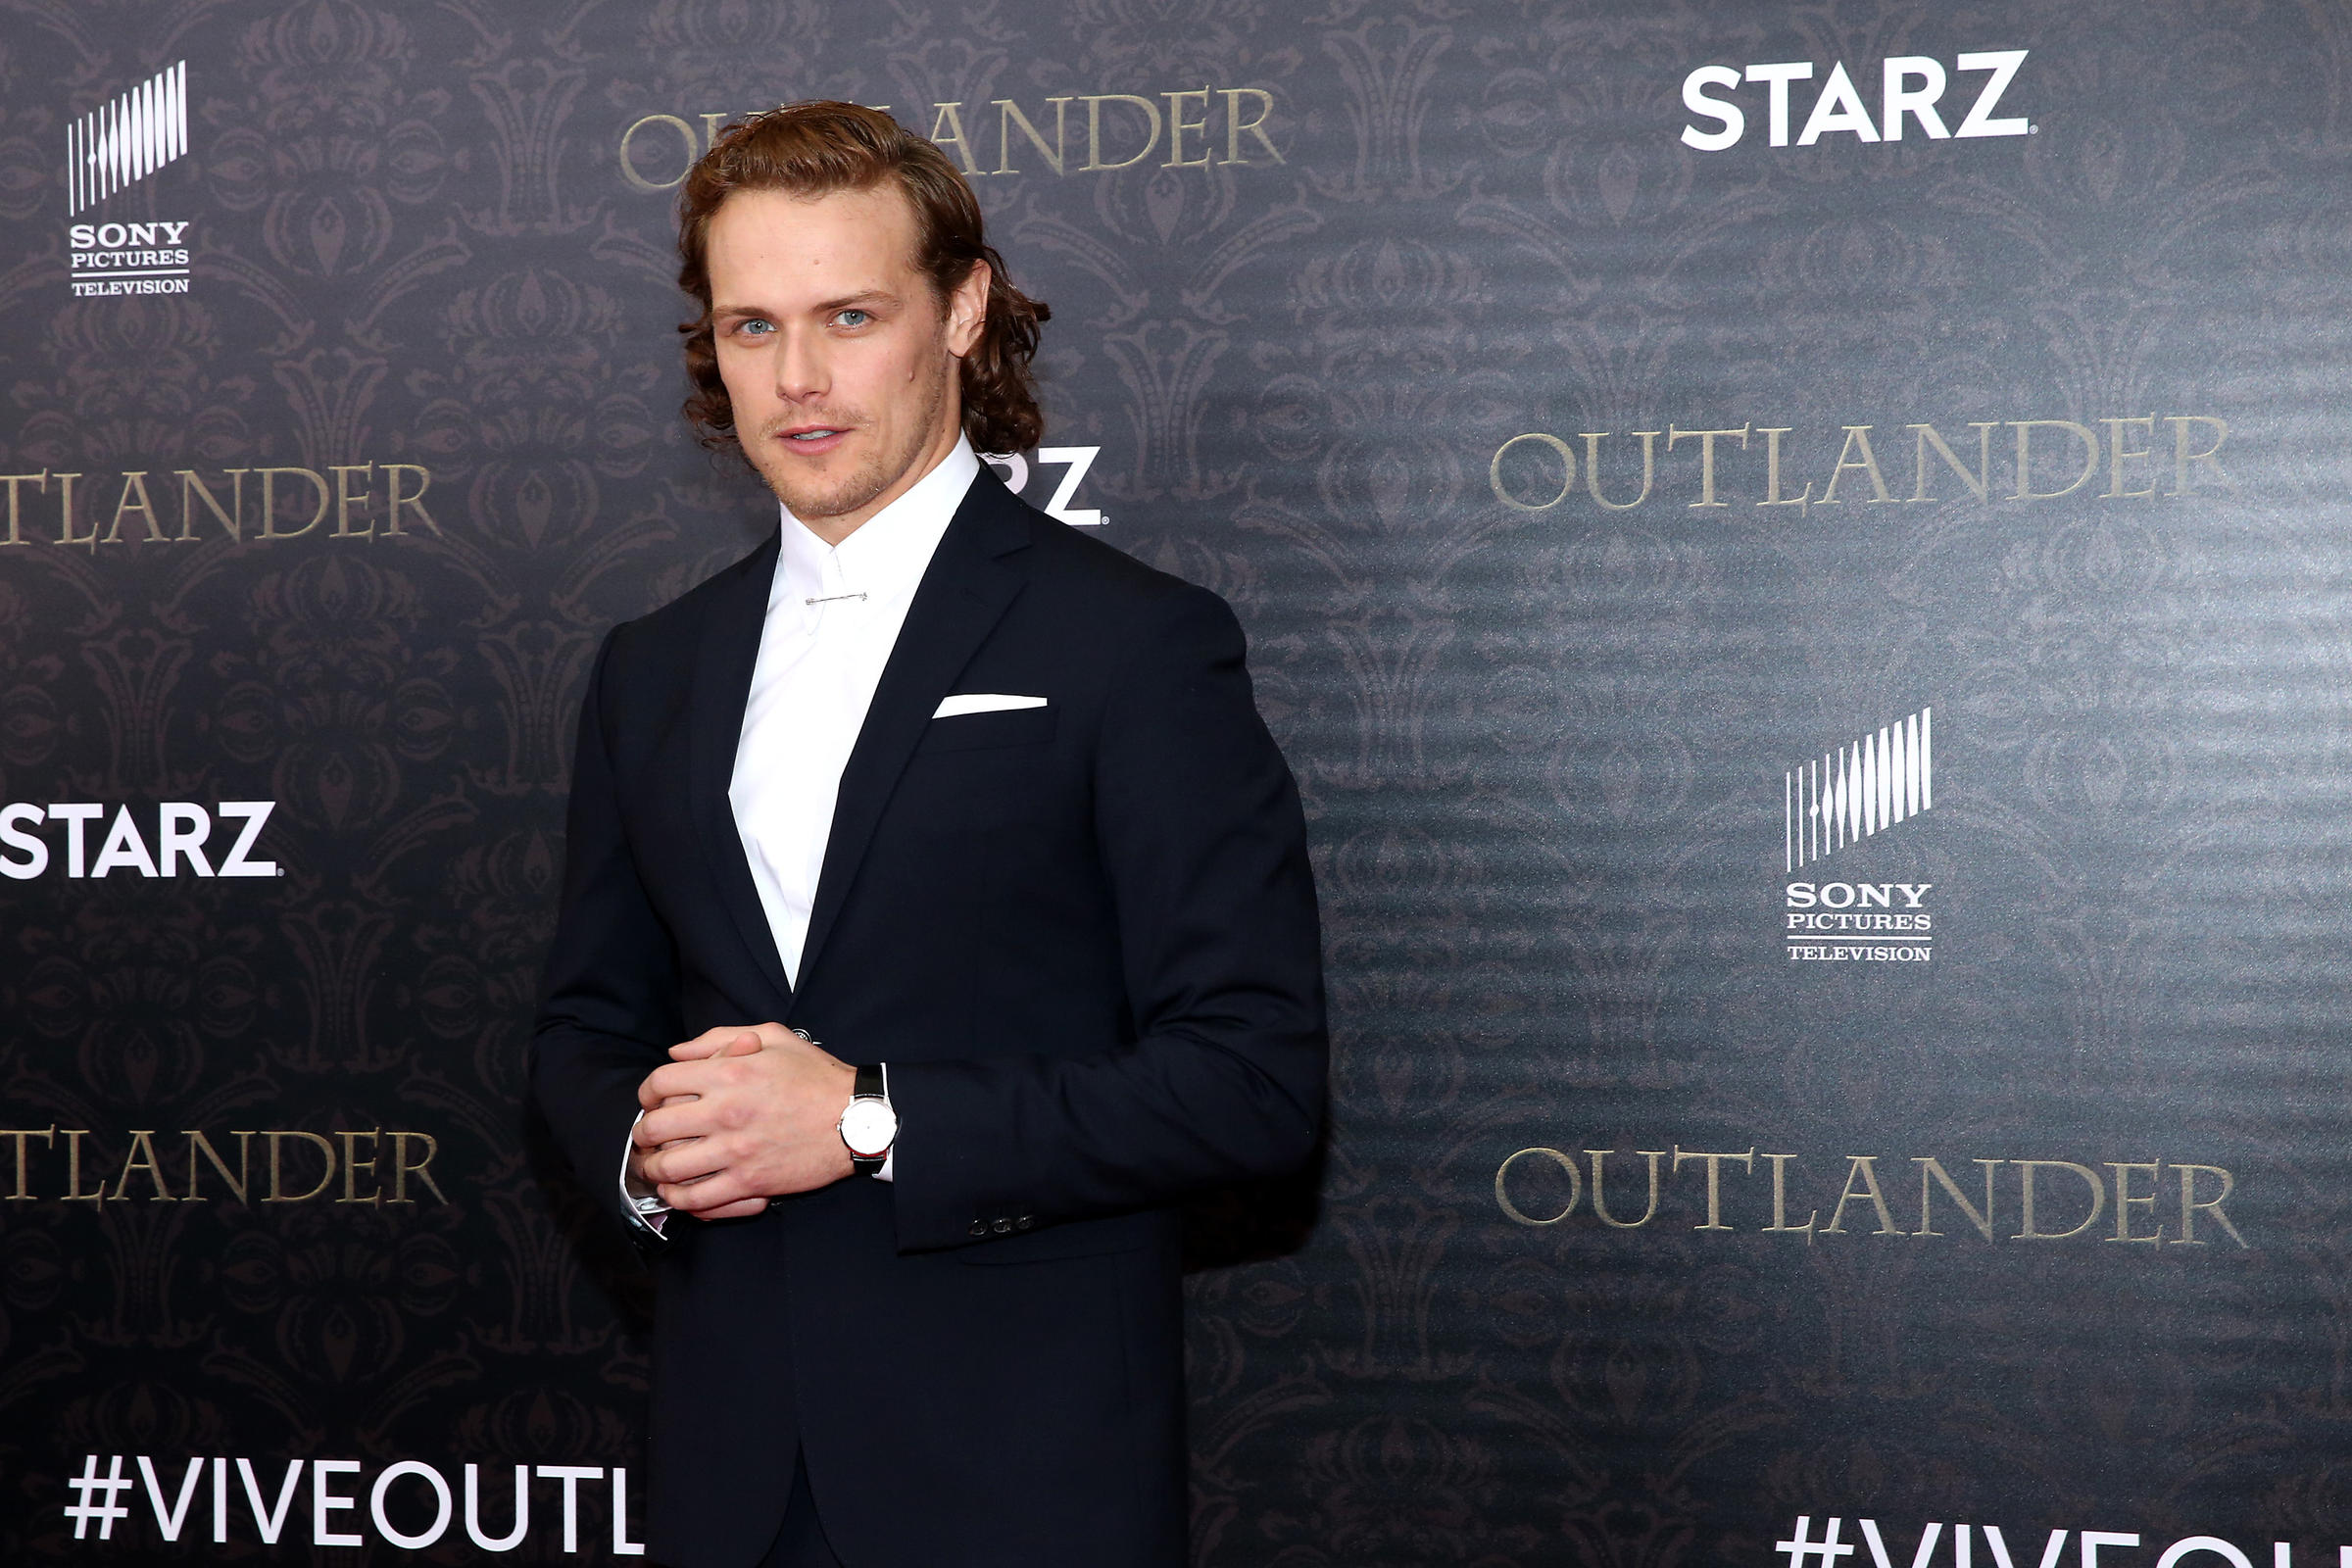 Outlander' Star Sam Heughan Offers Hair Care and Haggis Tips | WUNC